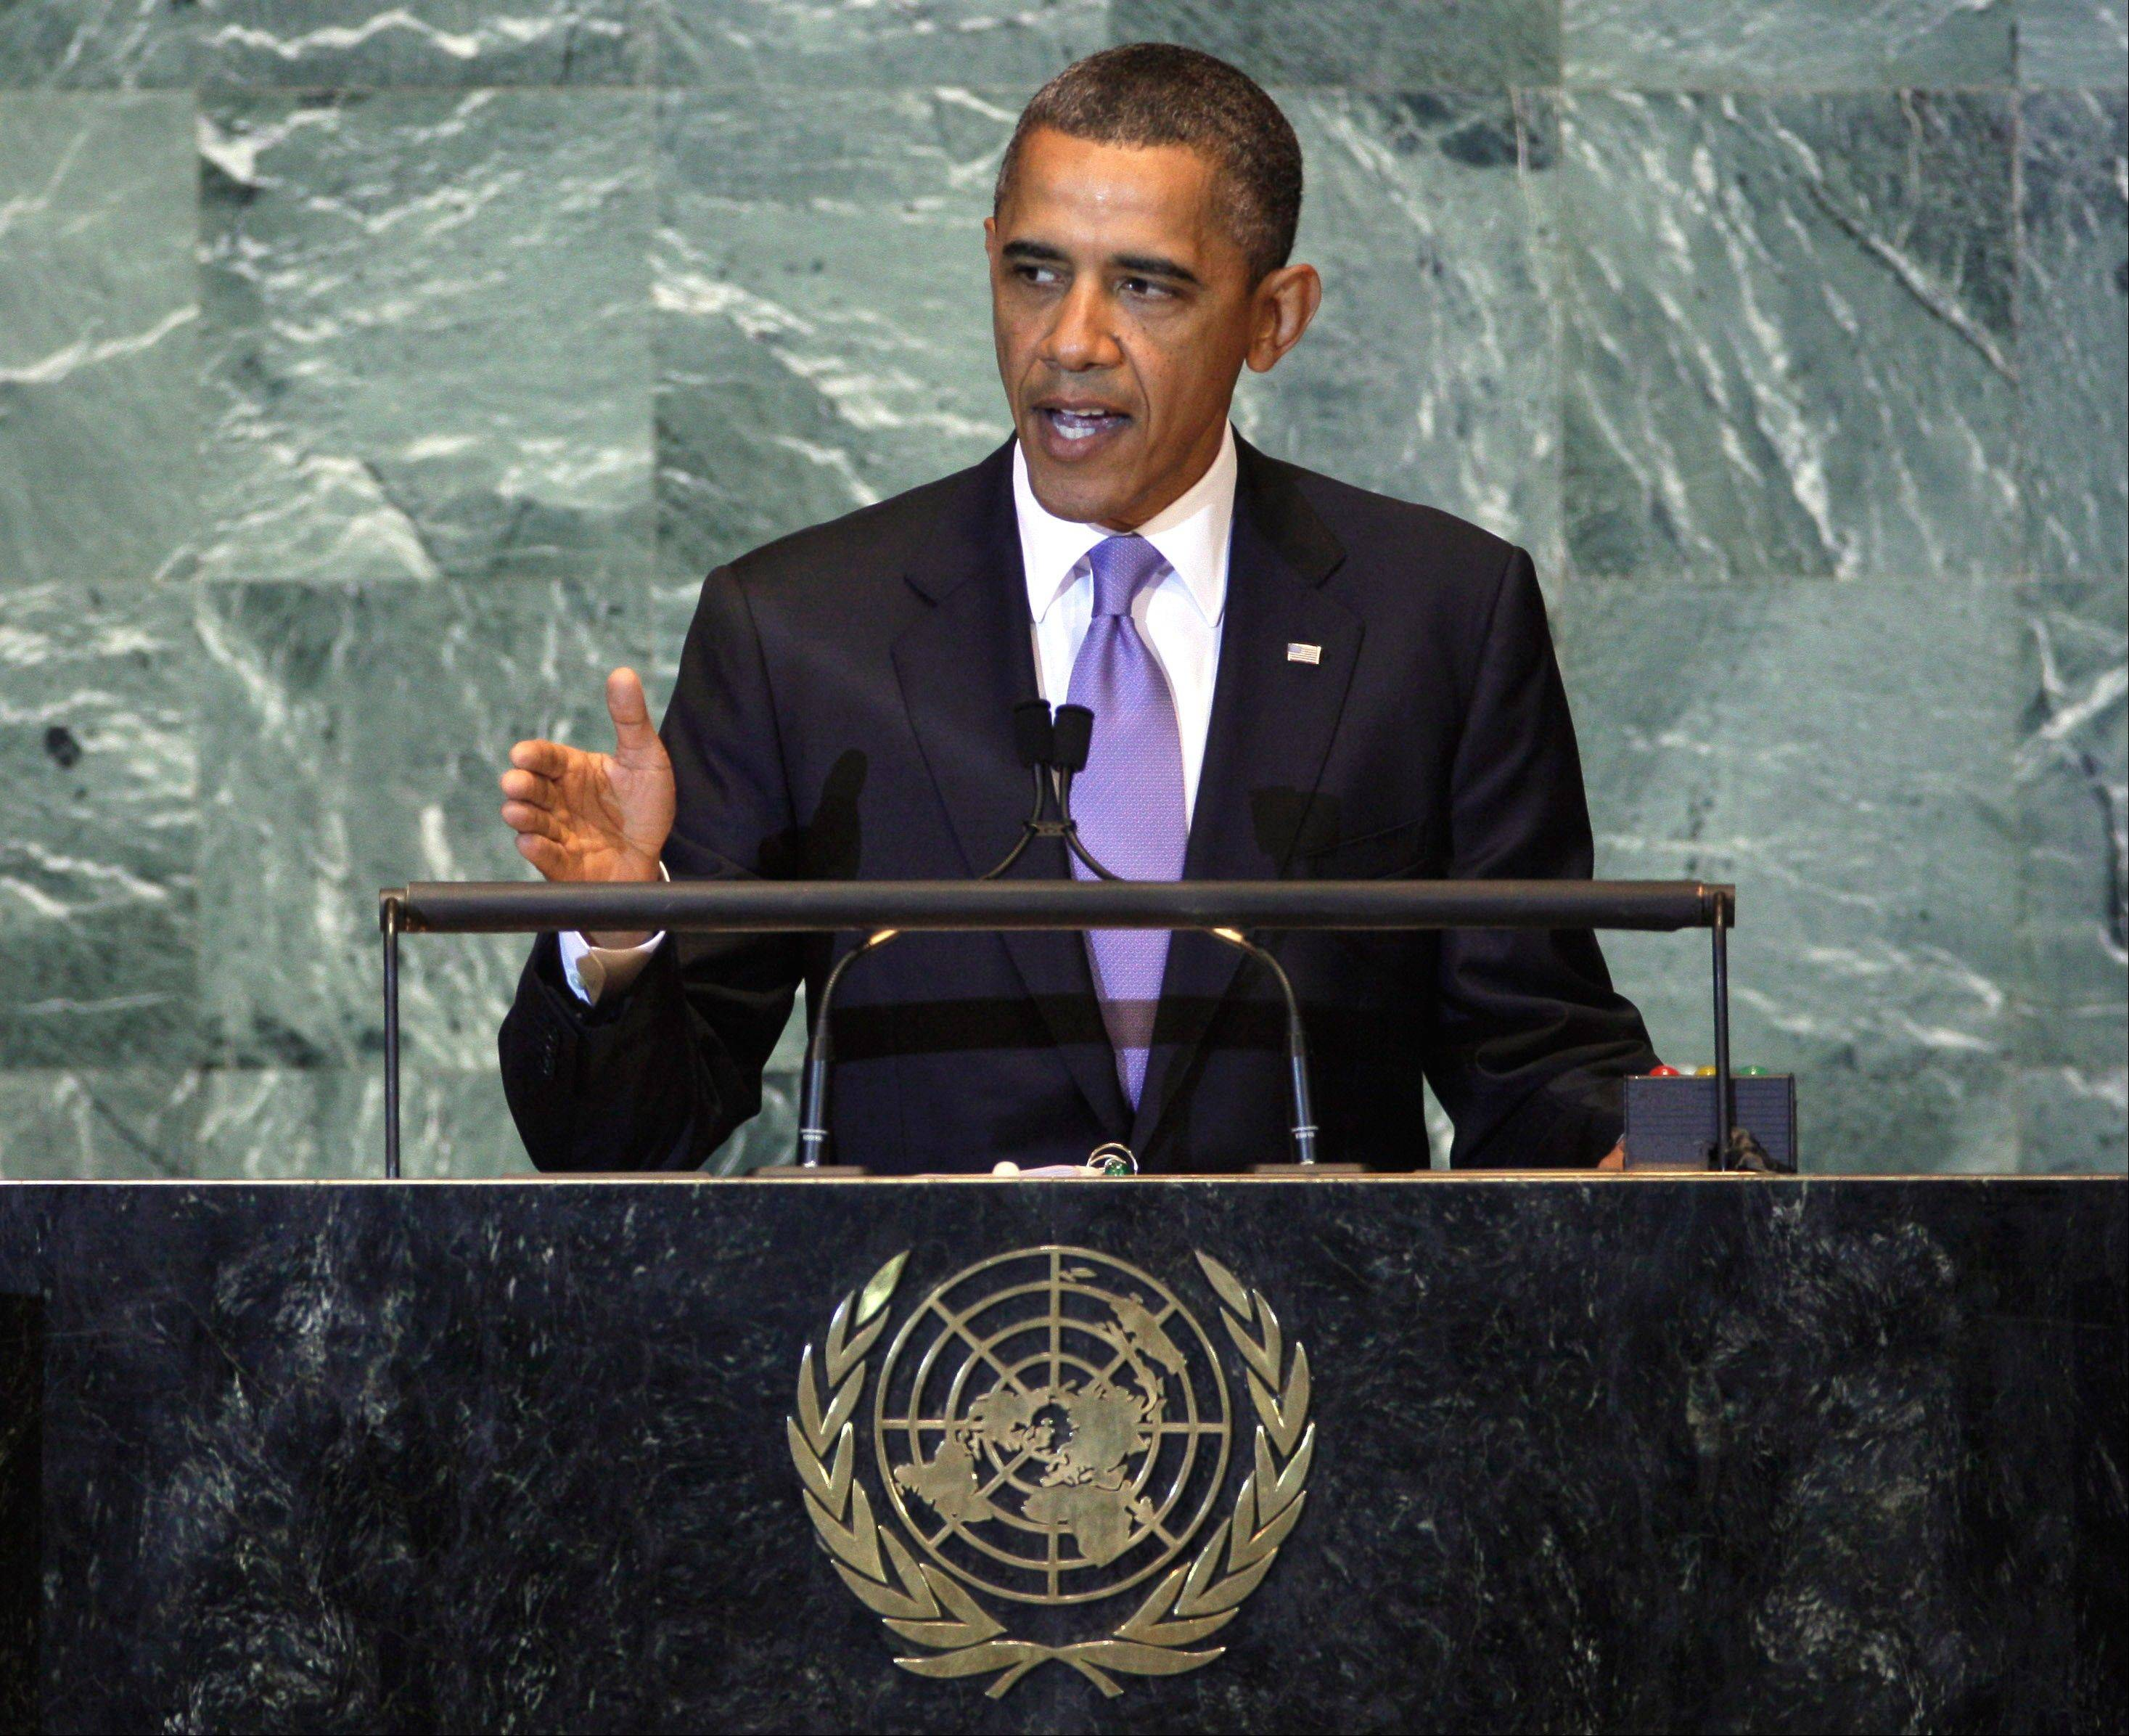 President Barack Obama addresses, speaking before the U.N. General Assembly Wednesday, warned Palestinians not to press for statehood through the international body.